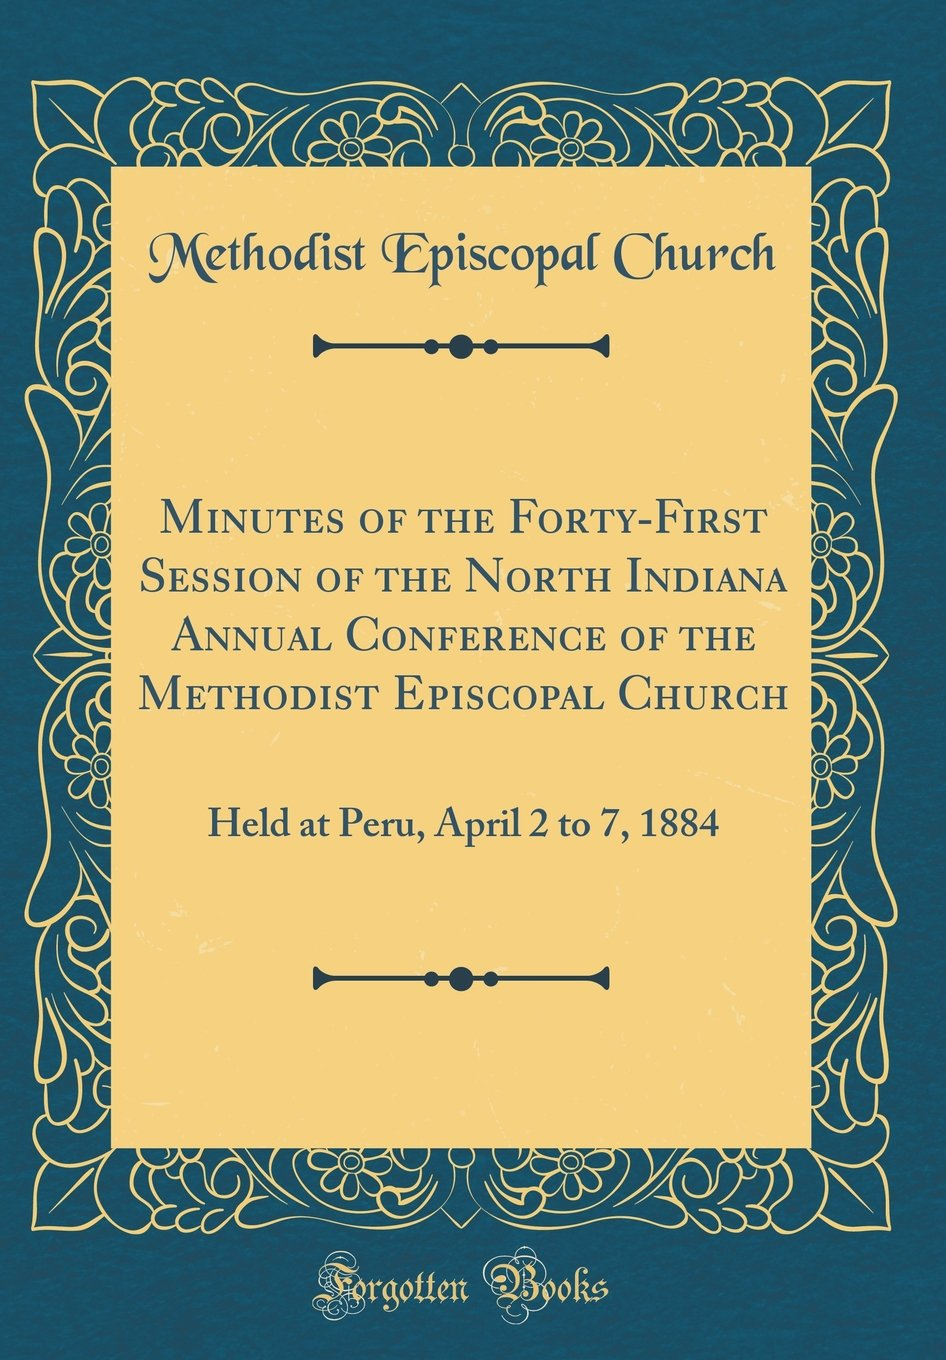 Read Online Minutes of the Forty-First Session of the North Indiana Annual Conference of the Methodist Episcopal Church: Held at Peru, April 2 to 7, 1884 (Classic Reprint) pdf epub